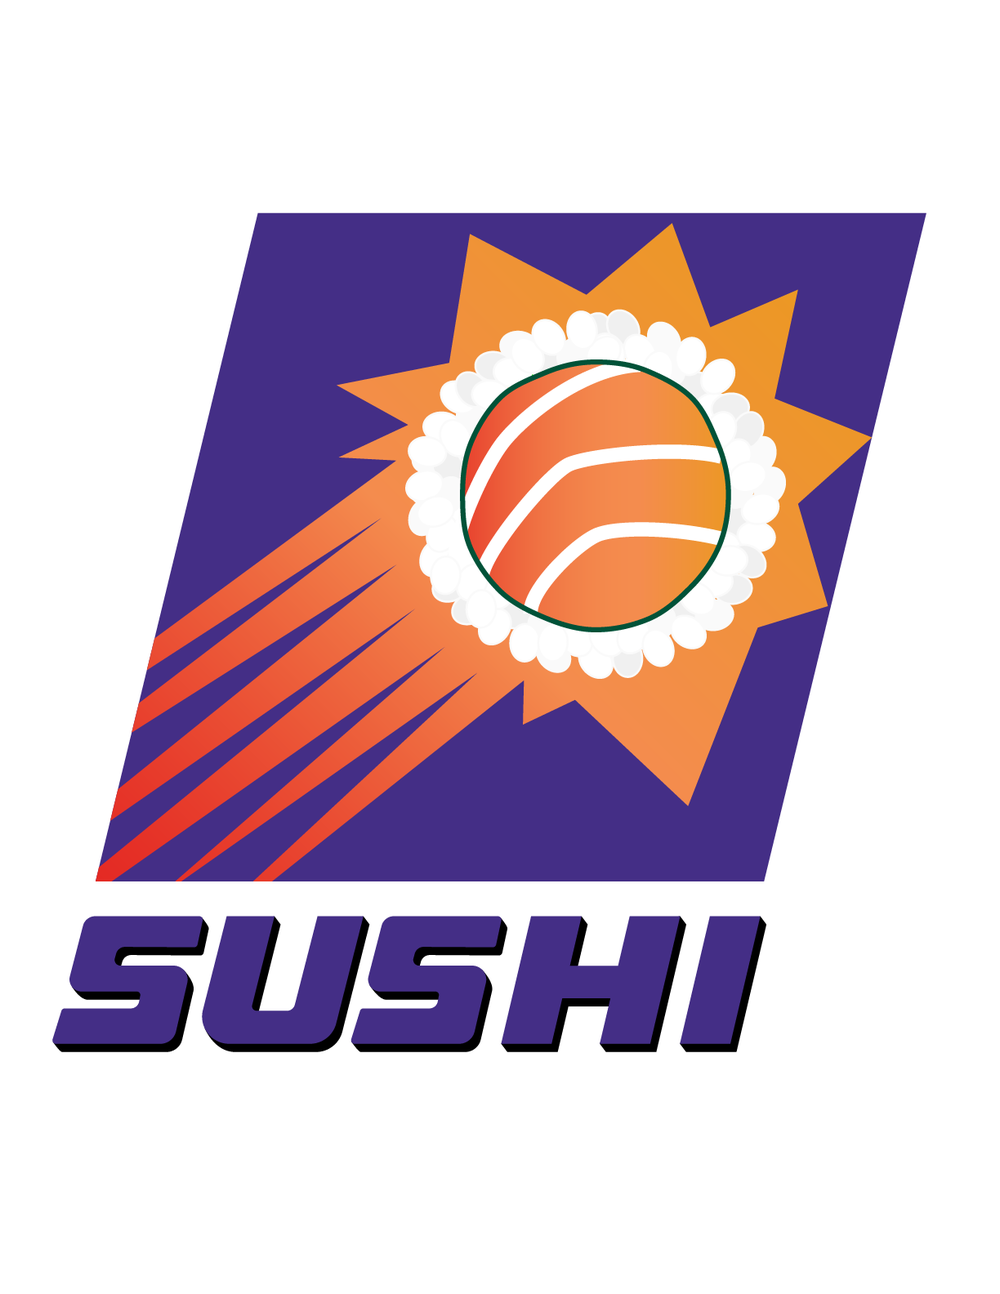 PHX Sushi@2x.png